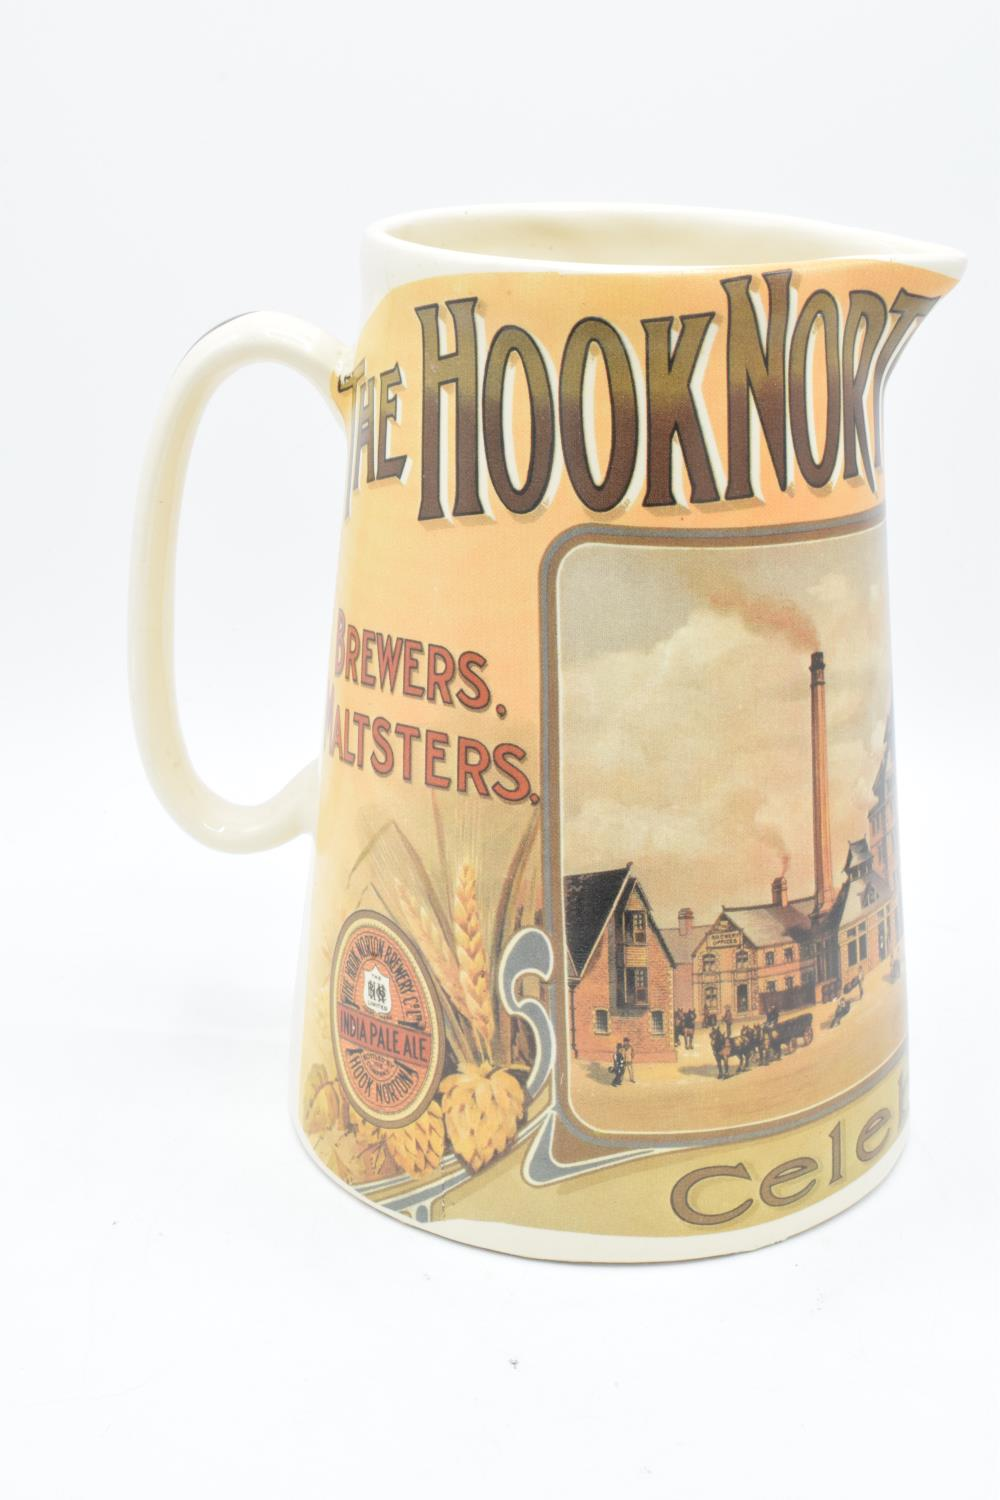 'The Hook Norton Brewery Co' late 20th century transfer print pub jug. In good condition with no - Image 4 of 5